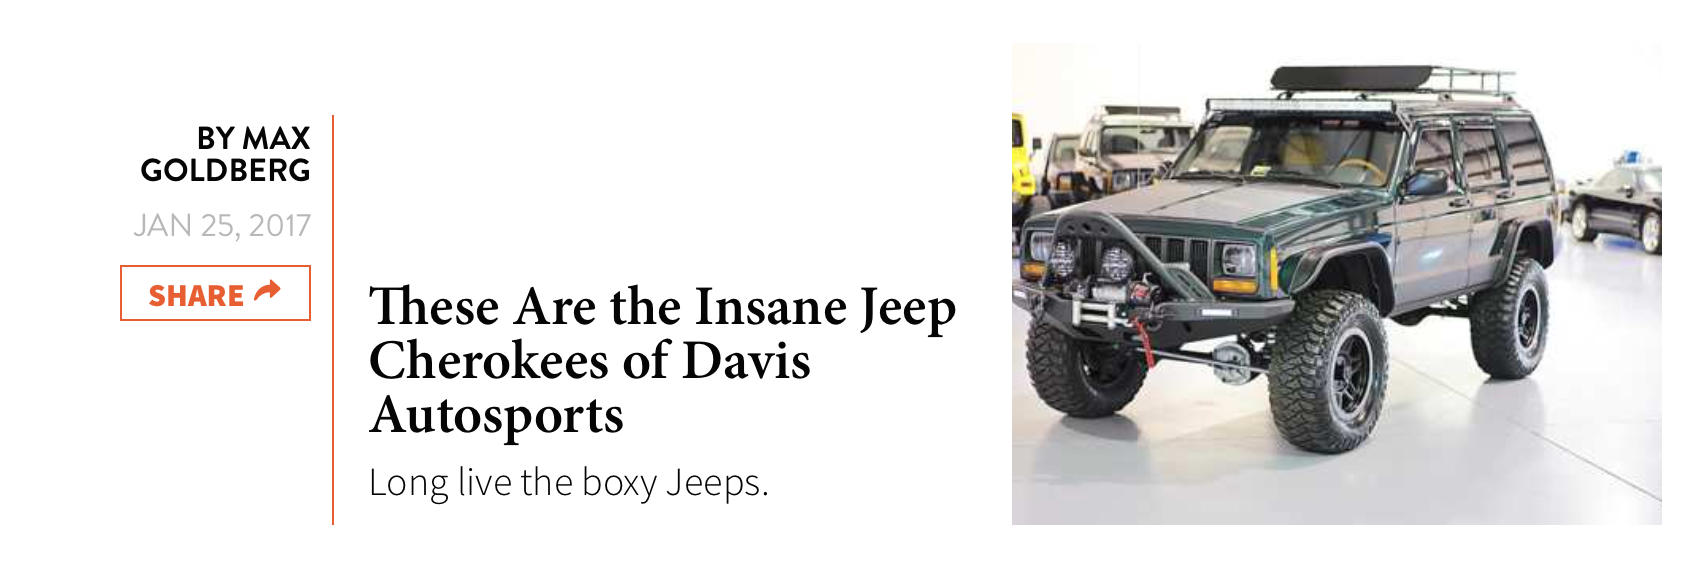 Check Out this National Review on Davis AutoSports by THE DRIVE.